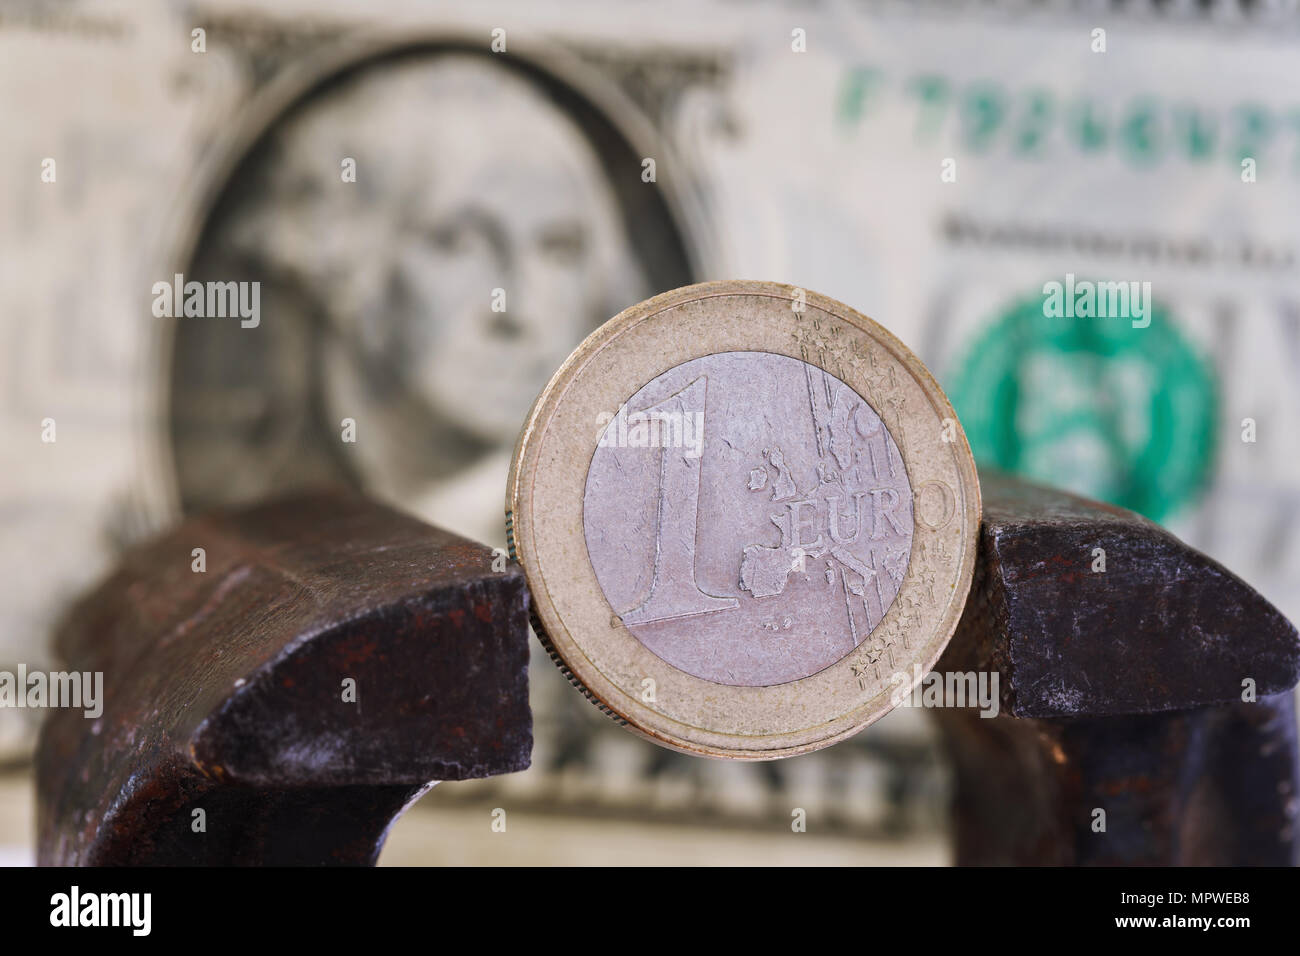 Financial dominance: one euro in a vice against the background of the American dollar with space for text - Stock Image